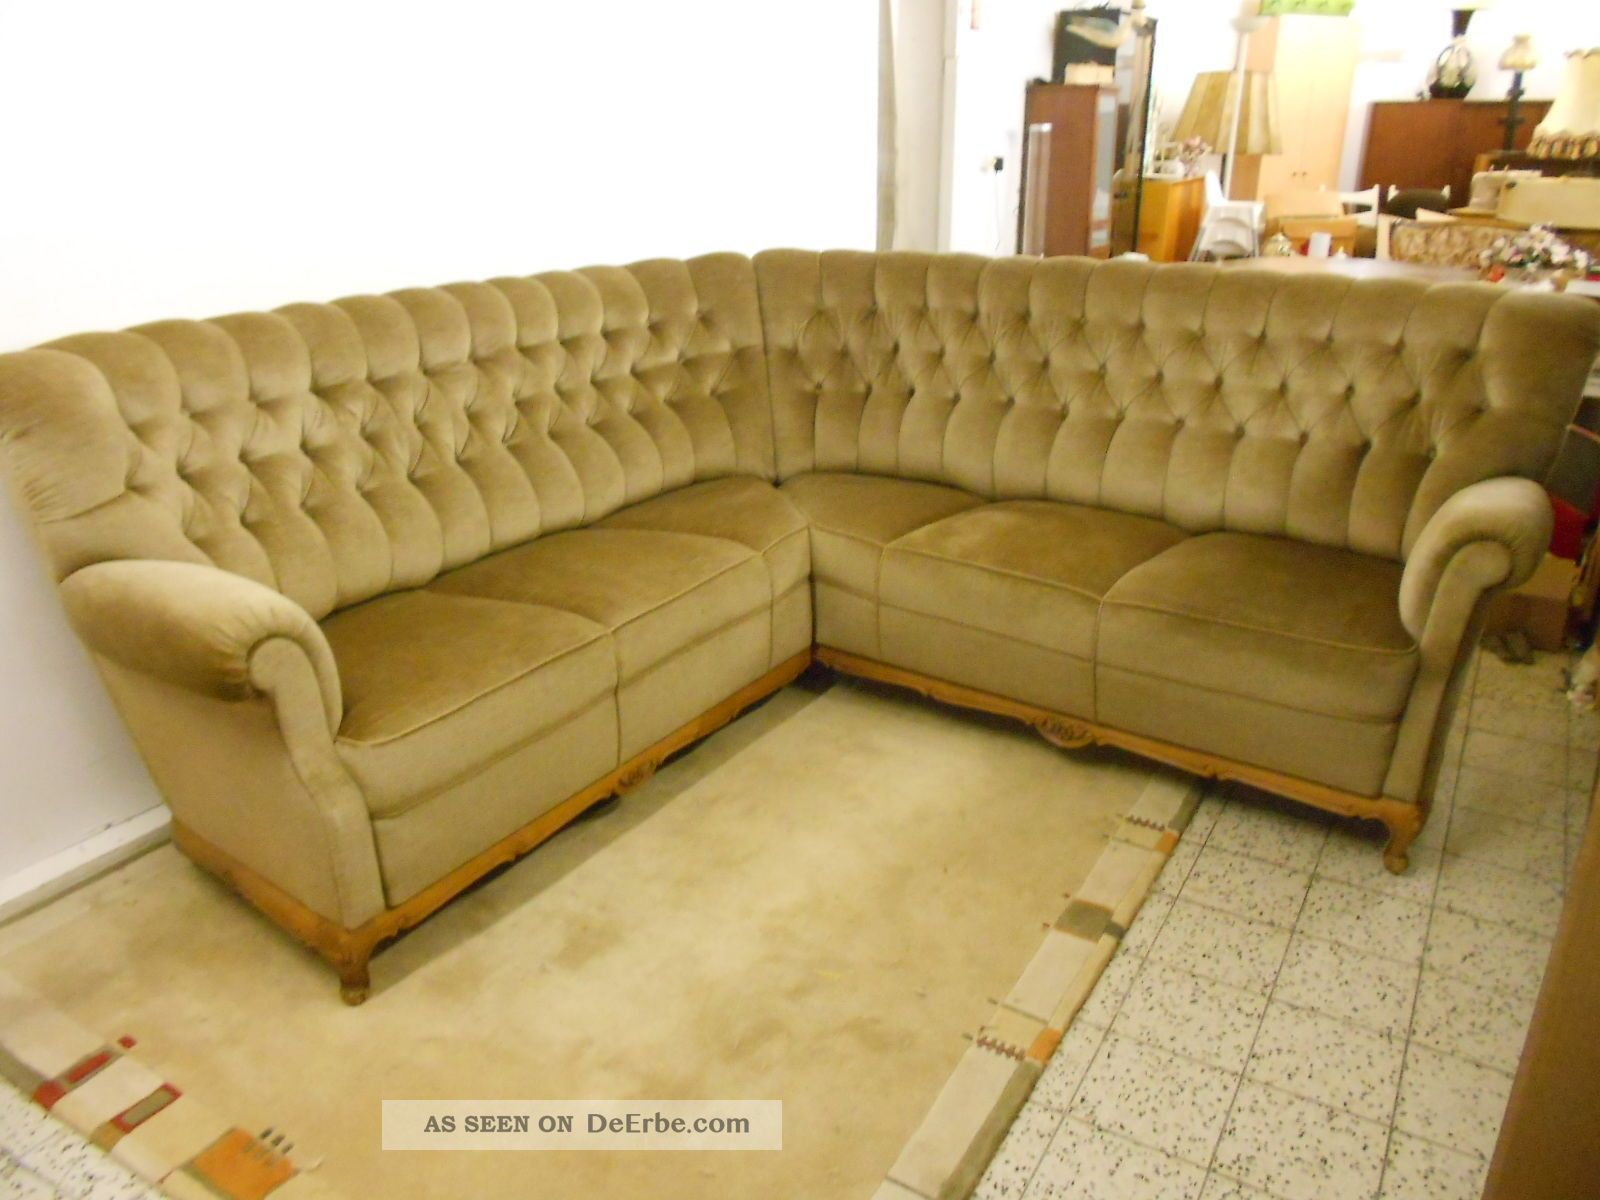 Sofa stil cool sofa stil with sofa stil simple machen for Sofa japanischer stil